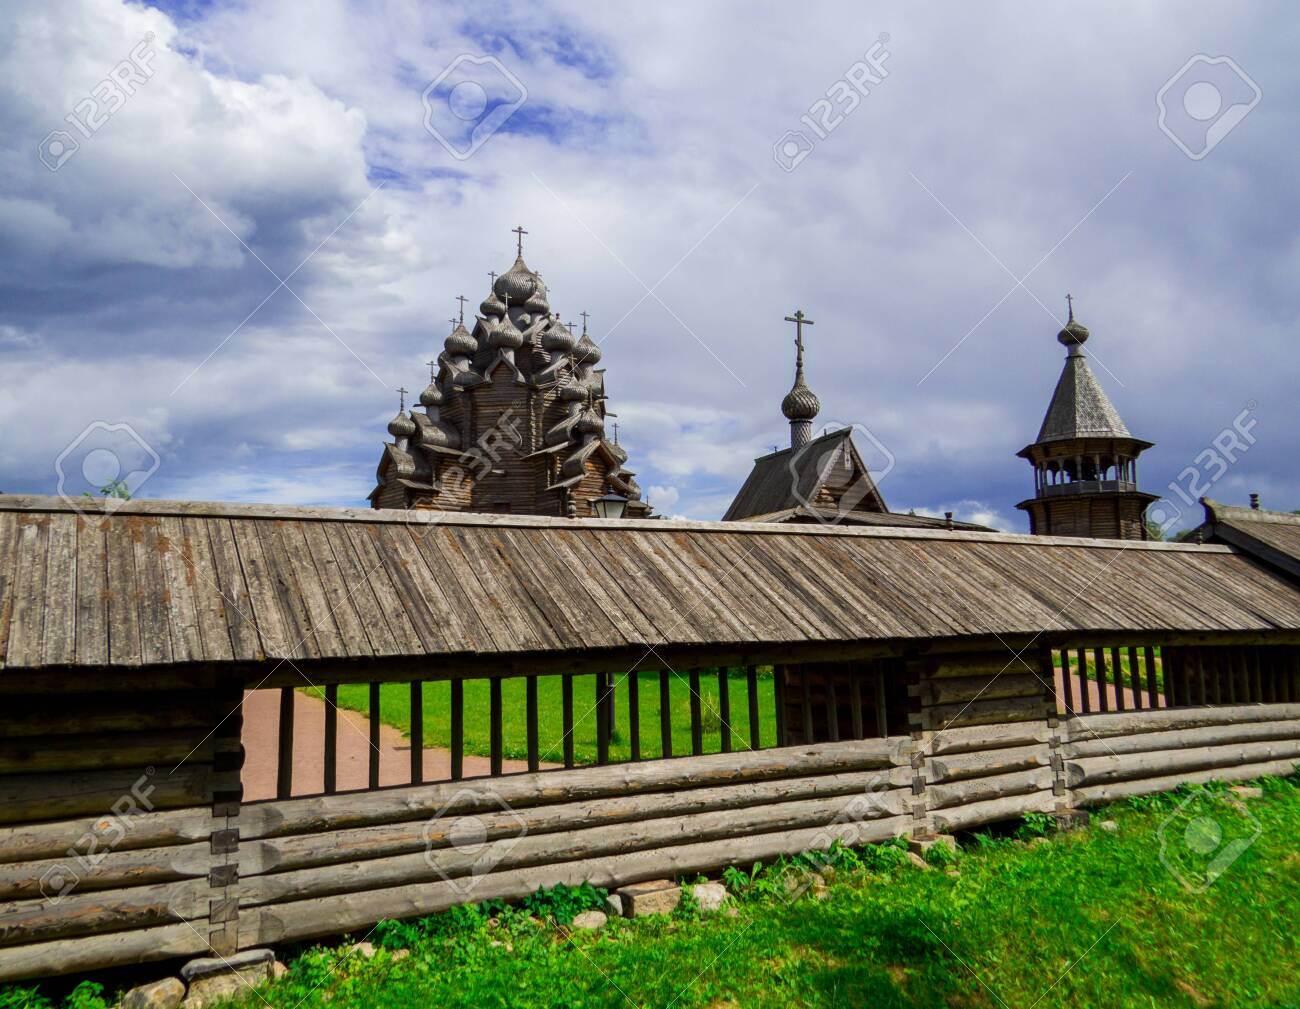 View of the wooden Church of the Intercession of the Holy Virgin in St. Petersburg, Russia - 151391743